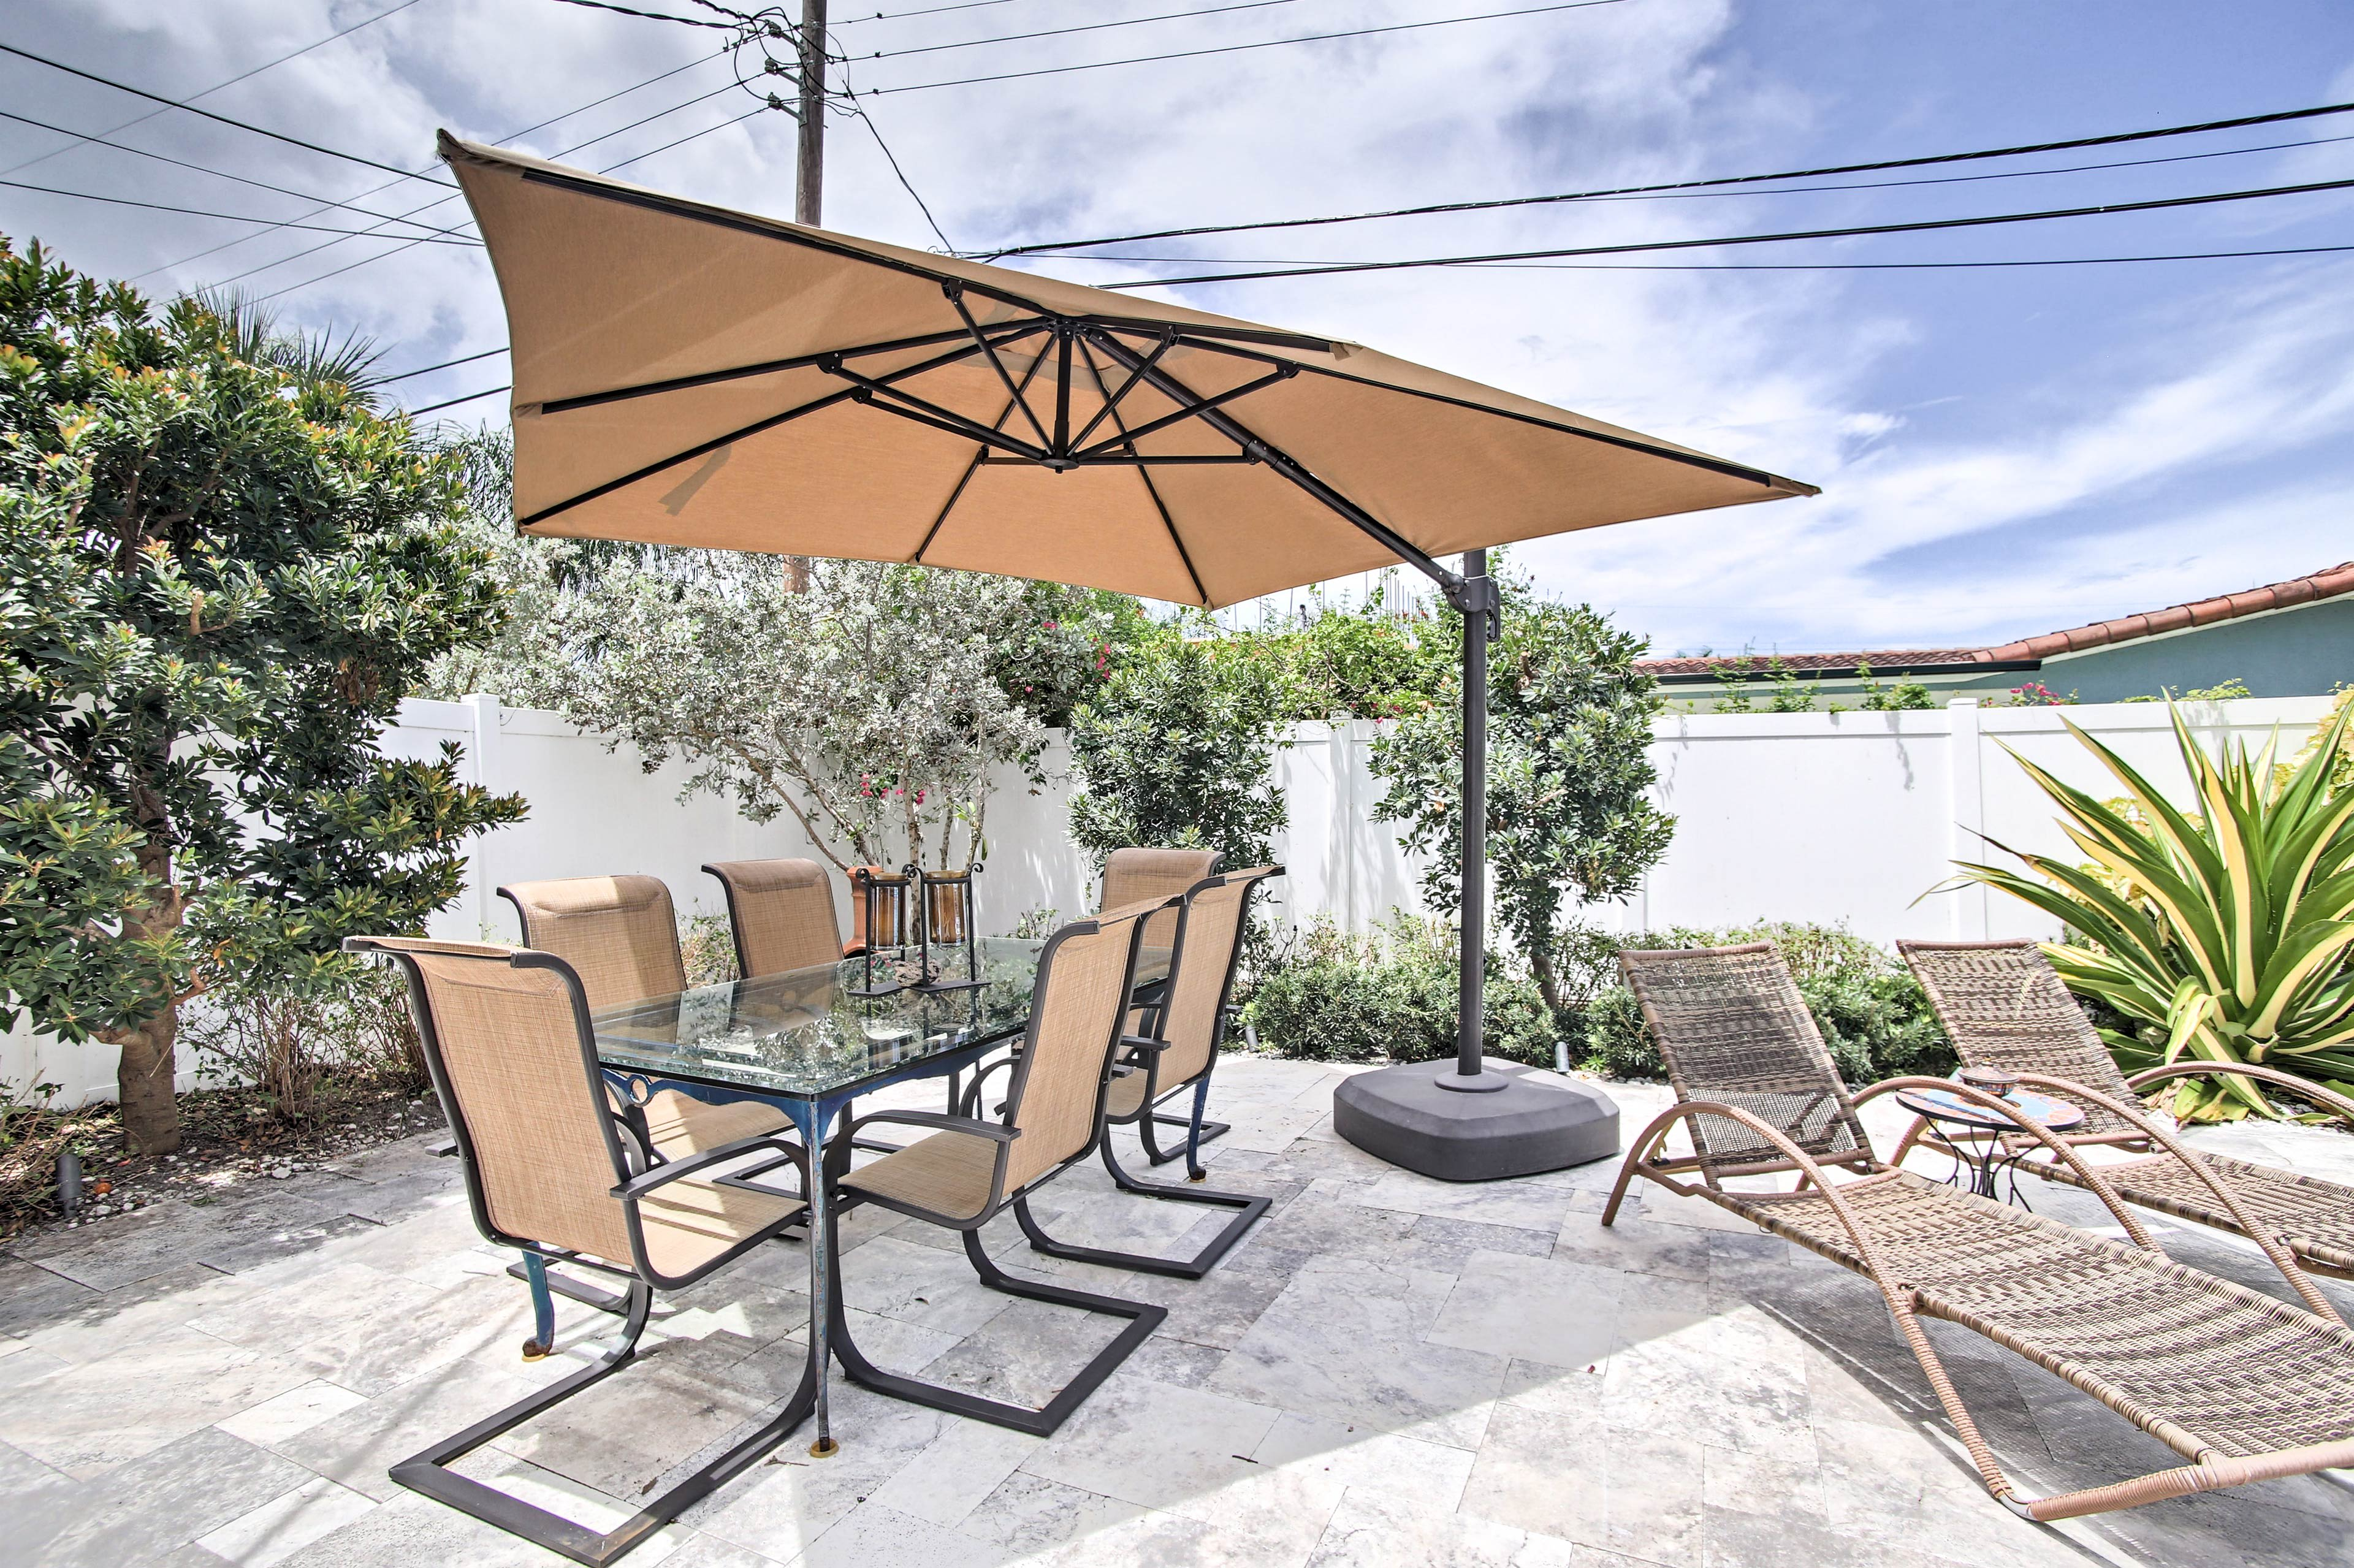 Even enjoy al fresco feasts around this outdoor table for 6.